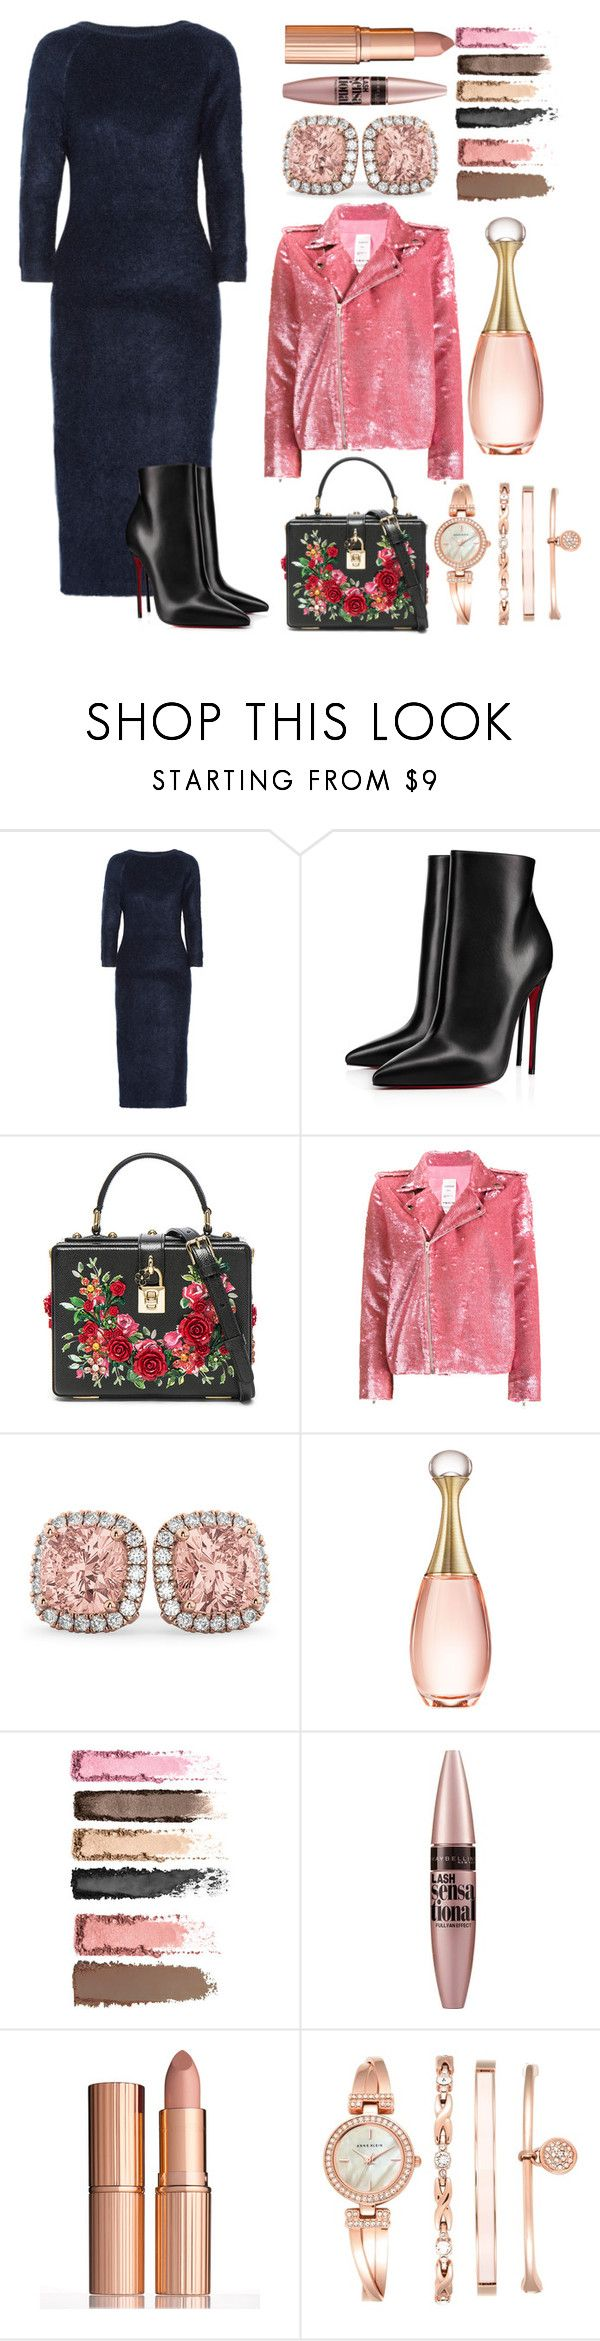 """""""She's kept it uncomplicated"""" by pulseofthematter ❤ liked on Polyvore featuring Prada, Christian Louboutin, Dolce&Gabbana, Ashish, Allurez, Christian Dior, Maybelline, Charlotte Tilbury and Anne Klein"""